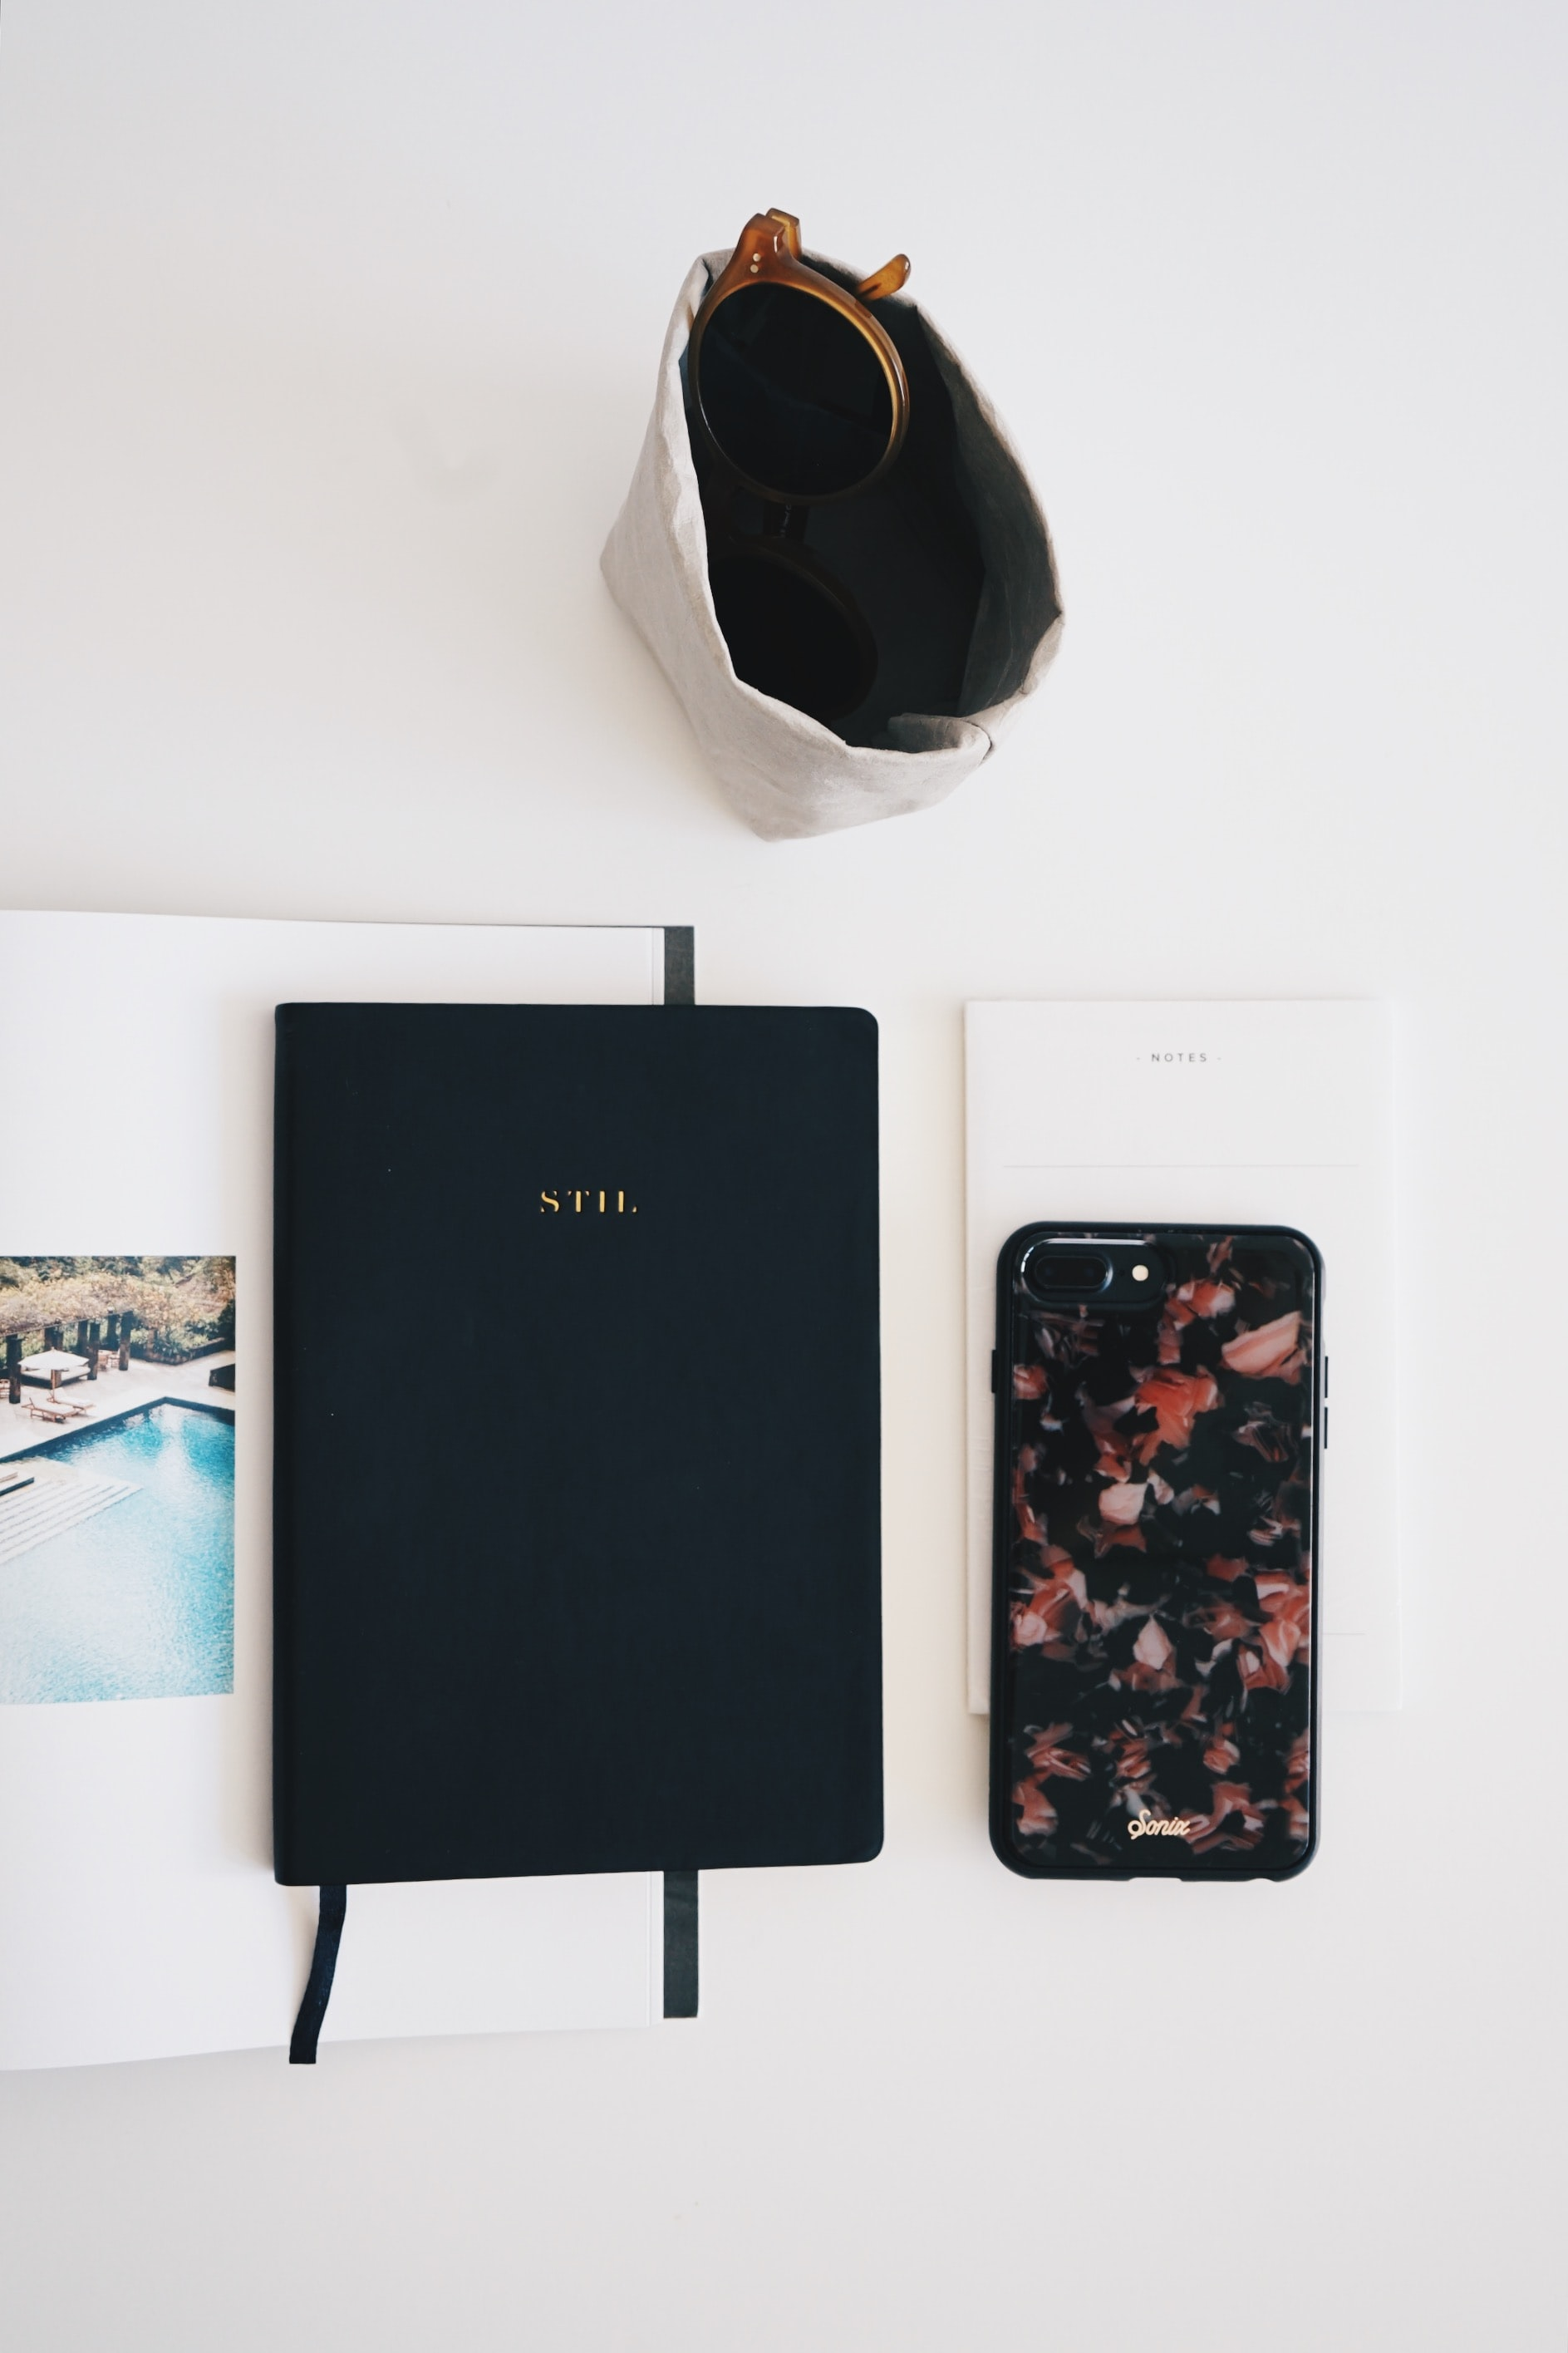 pink and black iPhone case beside black case